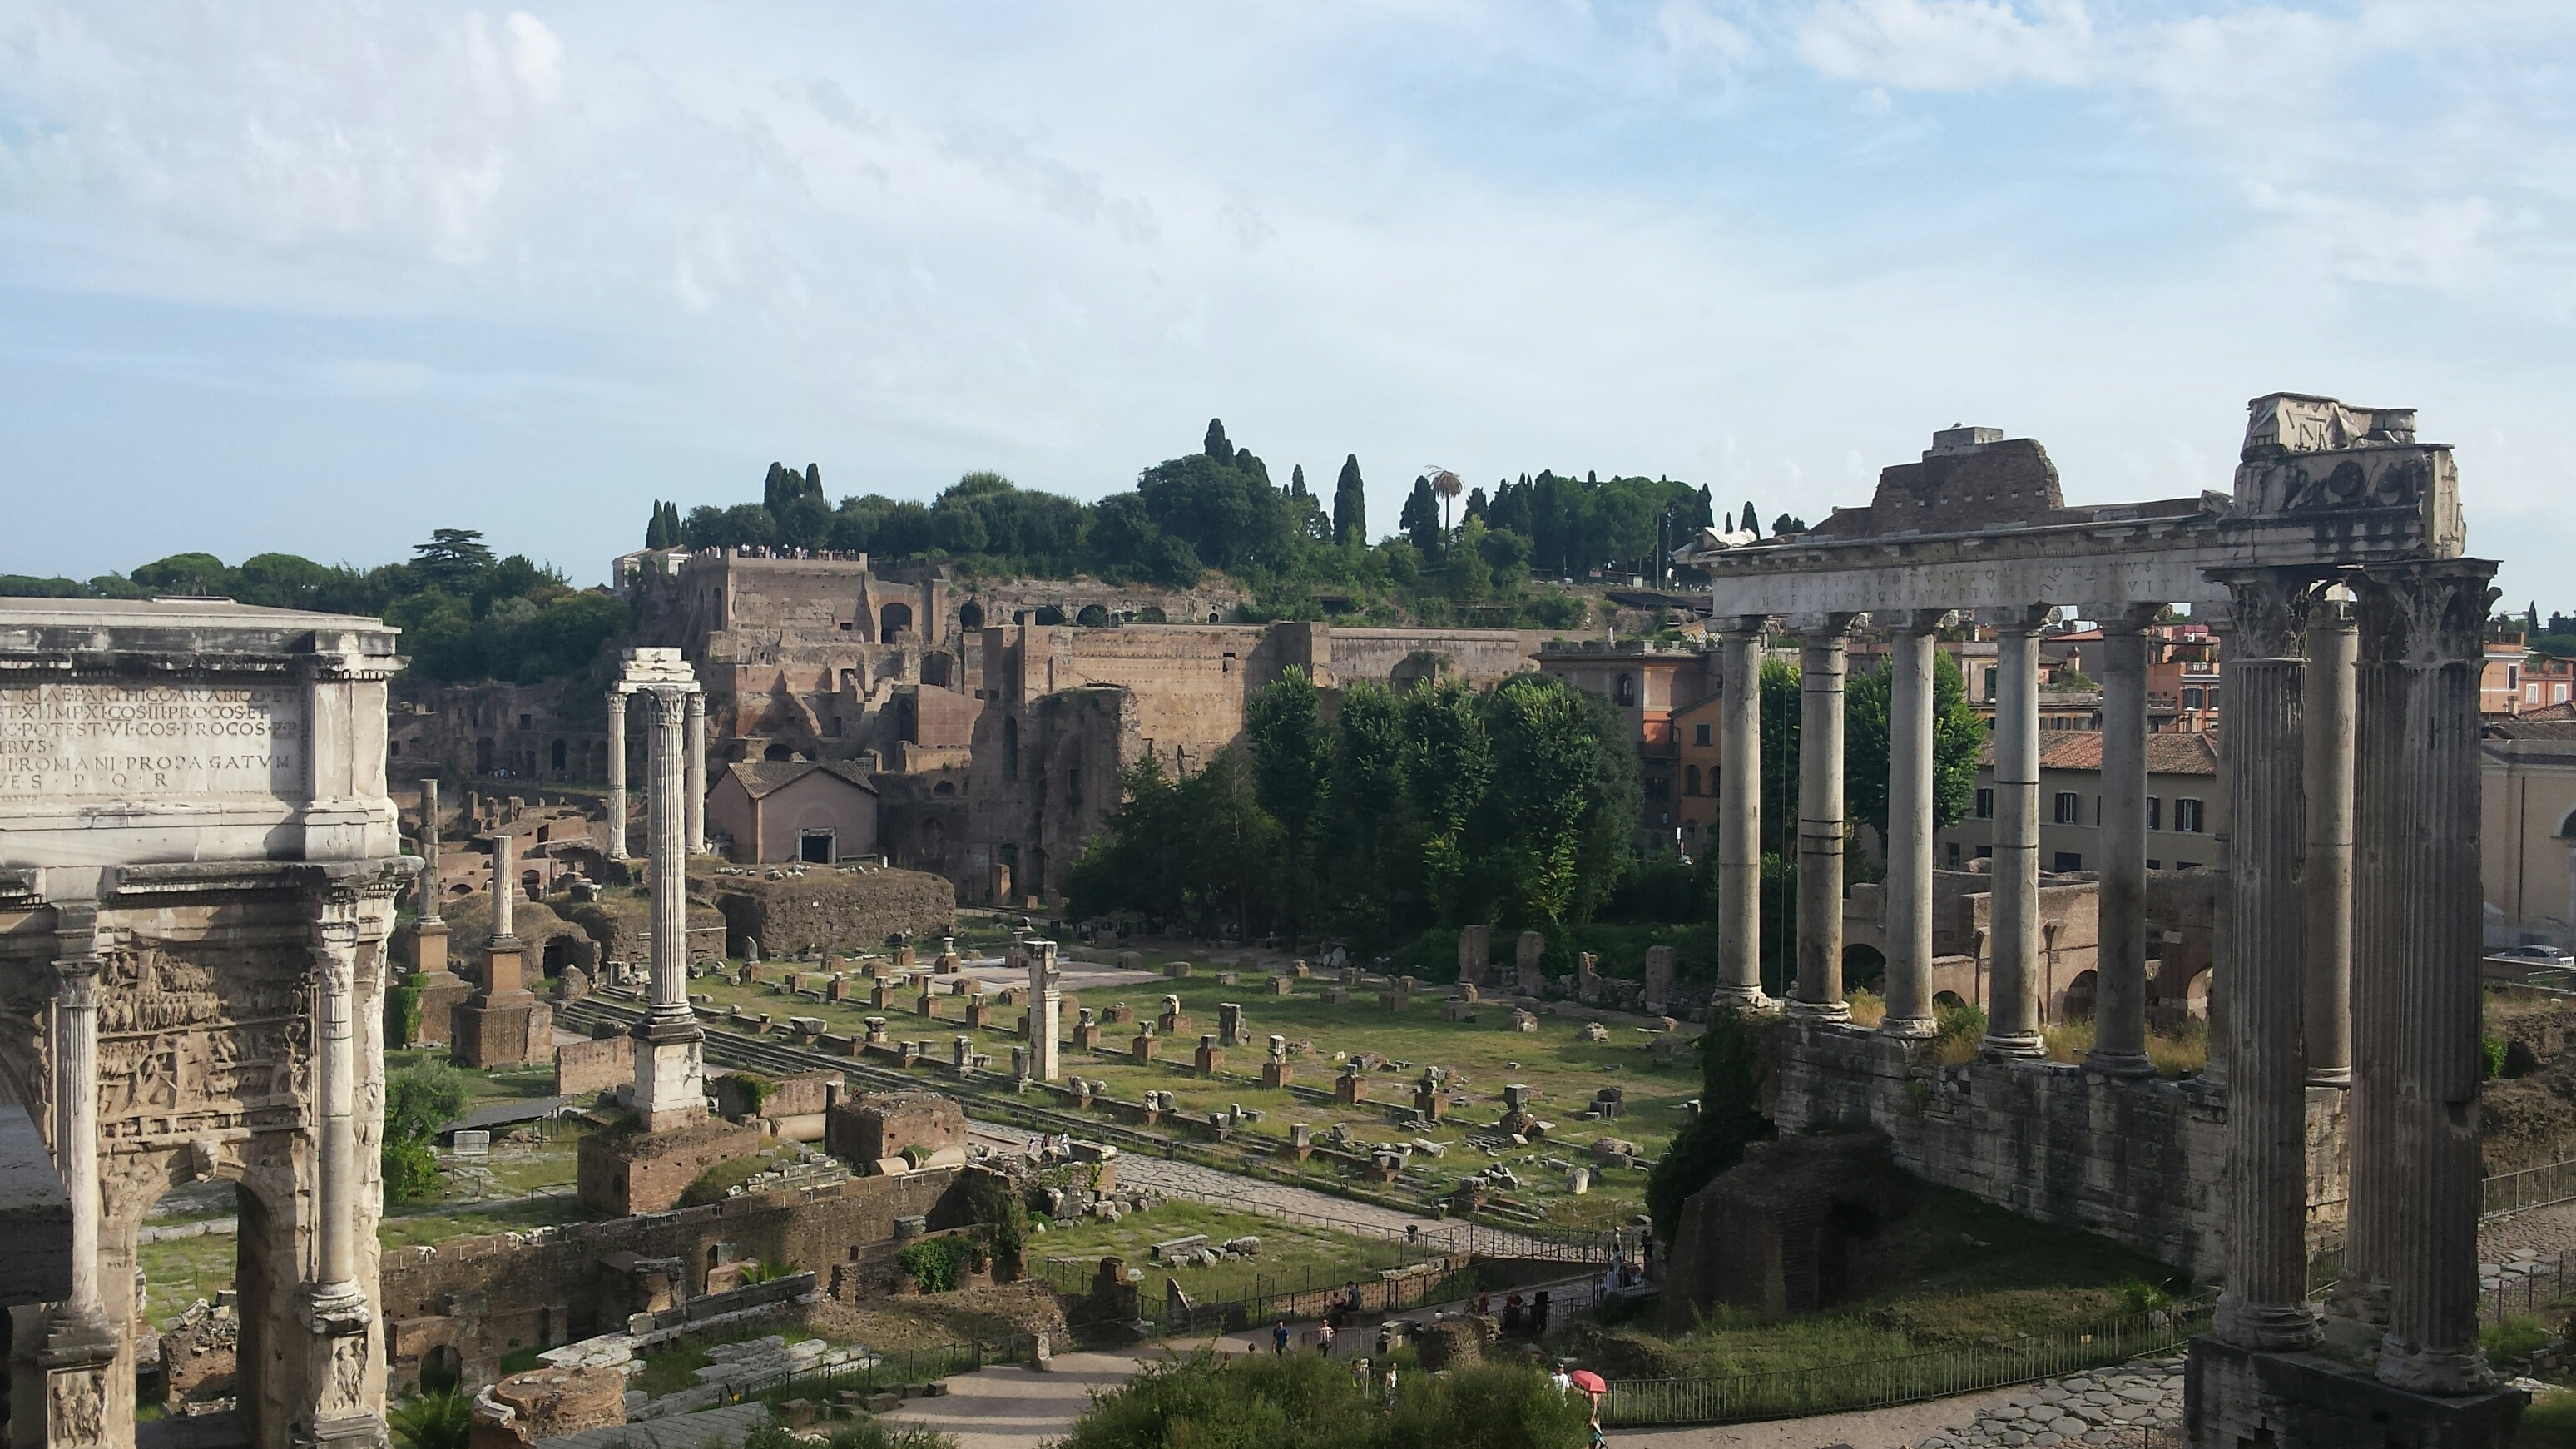 This is an image of the ancient forum in Rome, Italy.